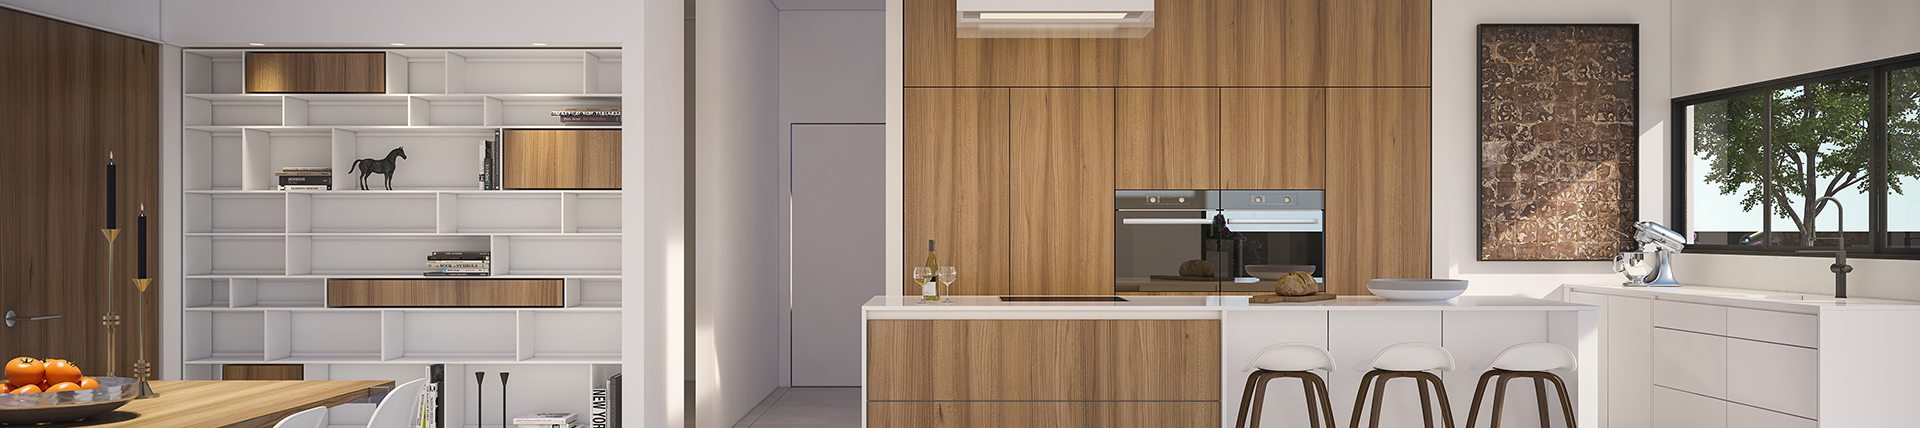 Architectural Visualization, Kitchen, Private Residence